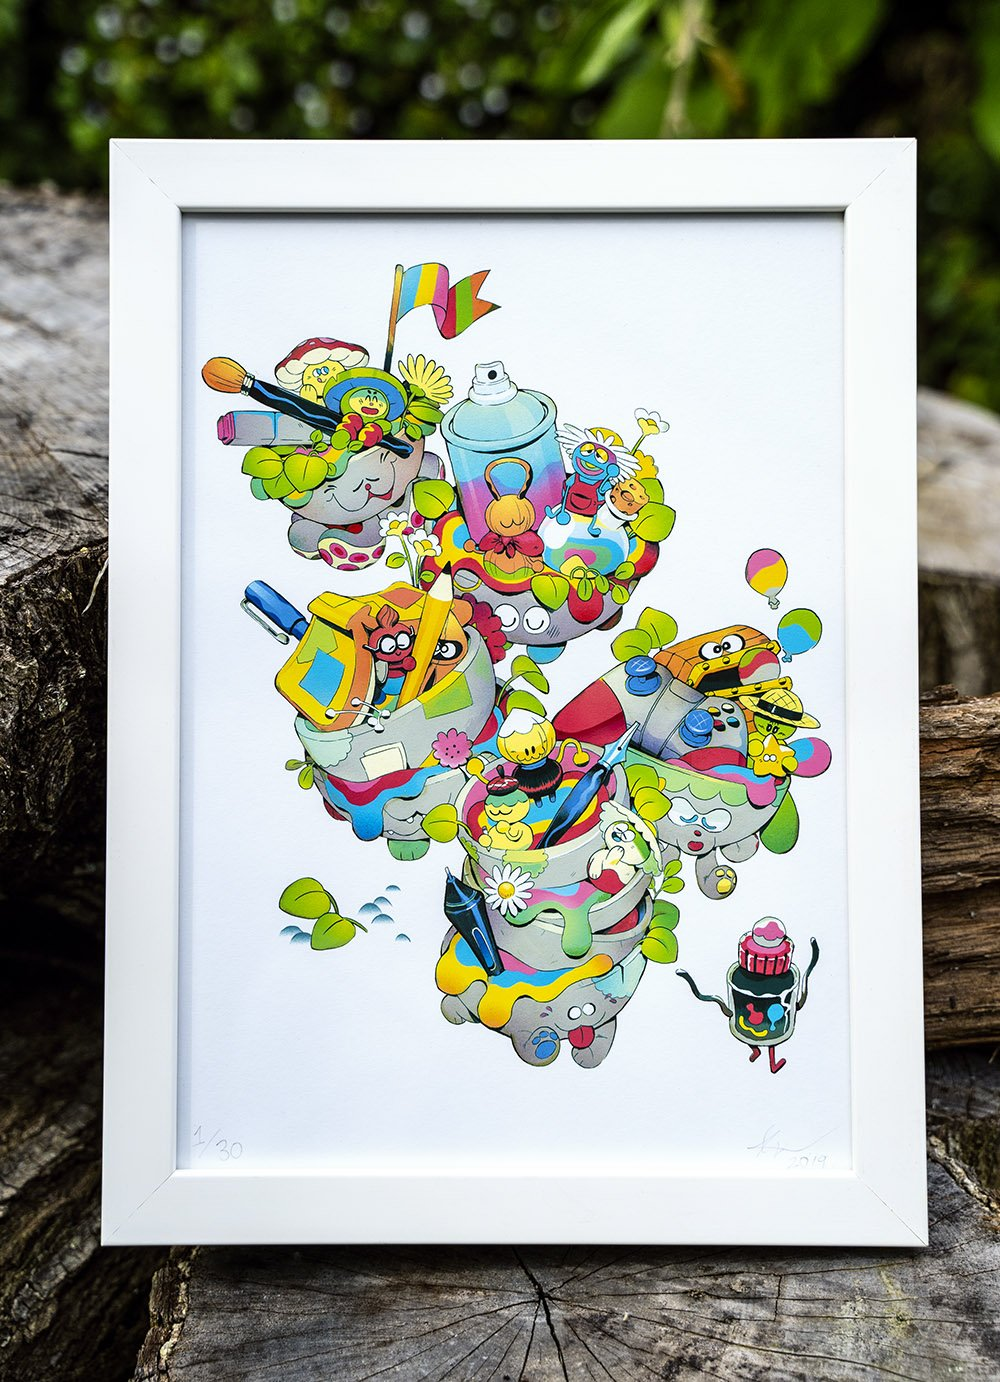 'Magic Pots' | Ed.30 Giclée Print